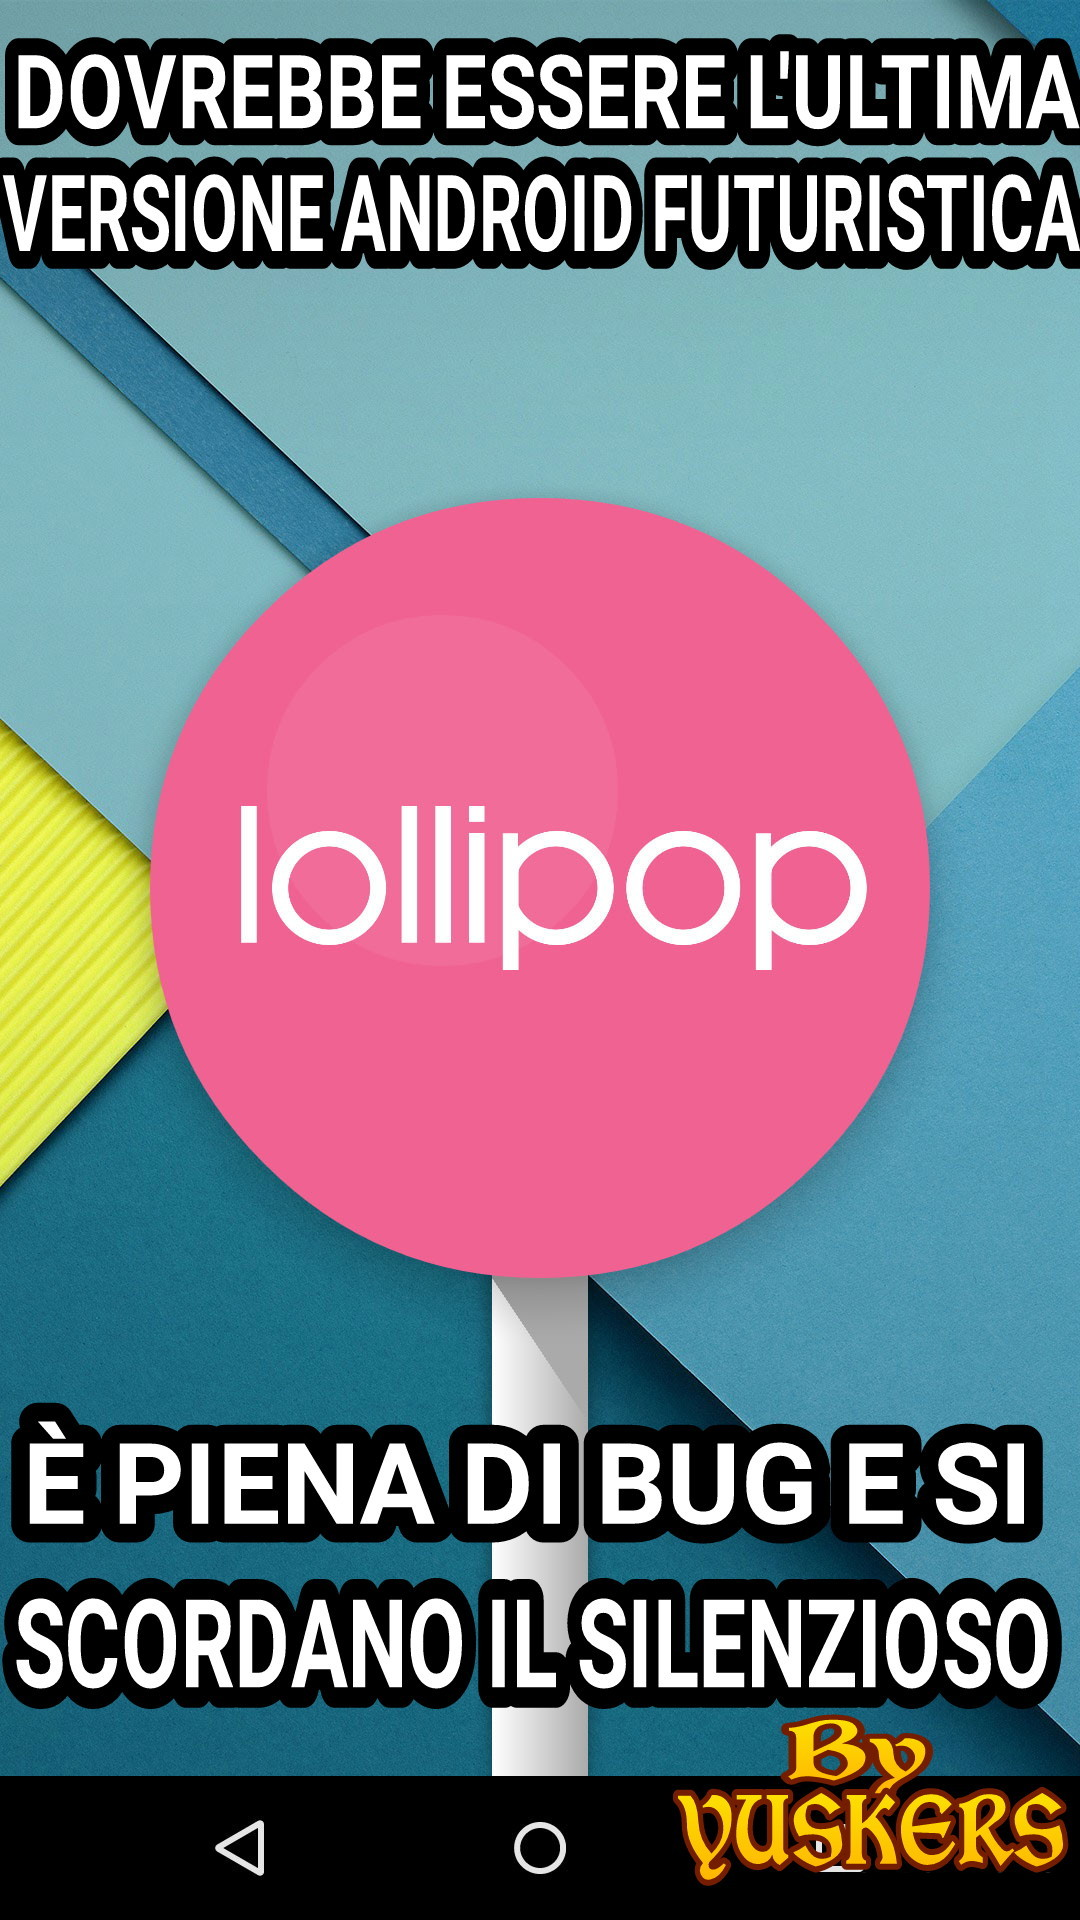 ANDROID LOLLIPOP - meme